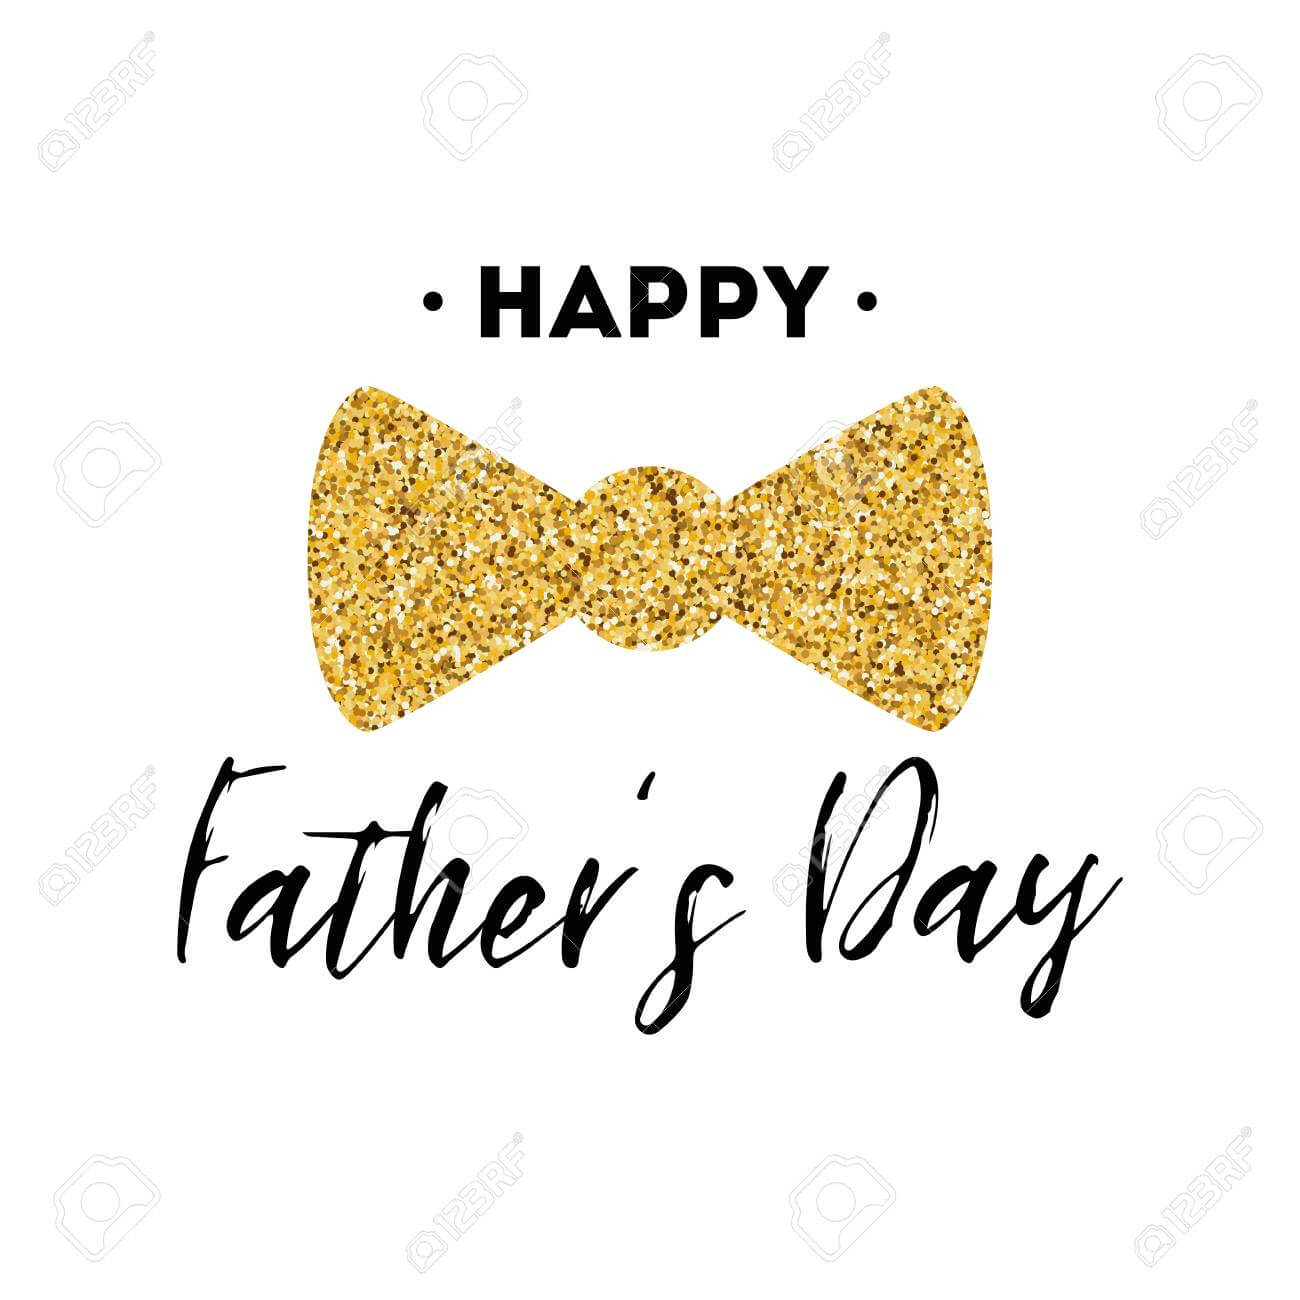 Fathers Day Card Design With Lettering, Golden Bow Tie Butterfly With Regard To Tie Banner Template